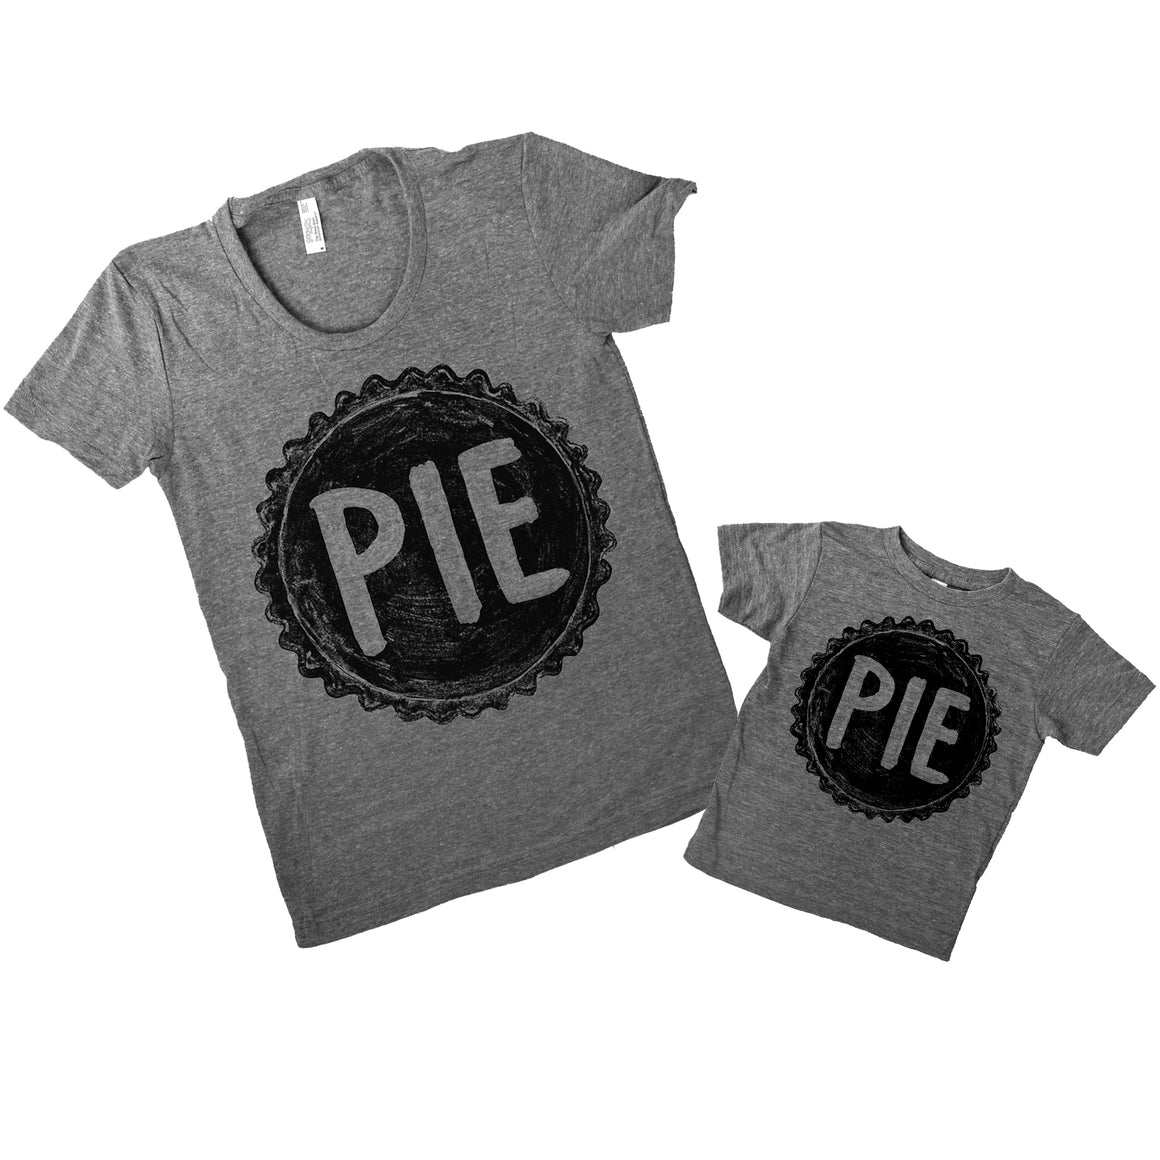 Mommy and Me PIE Shirts by Xenotees